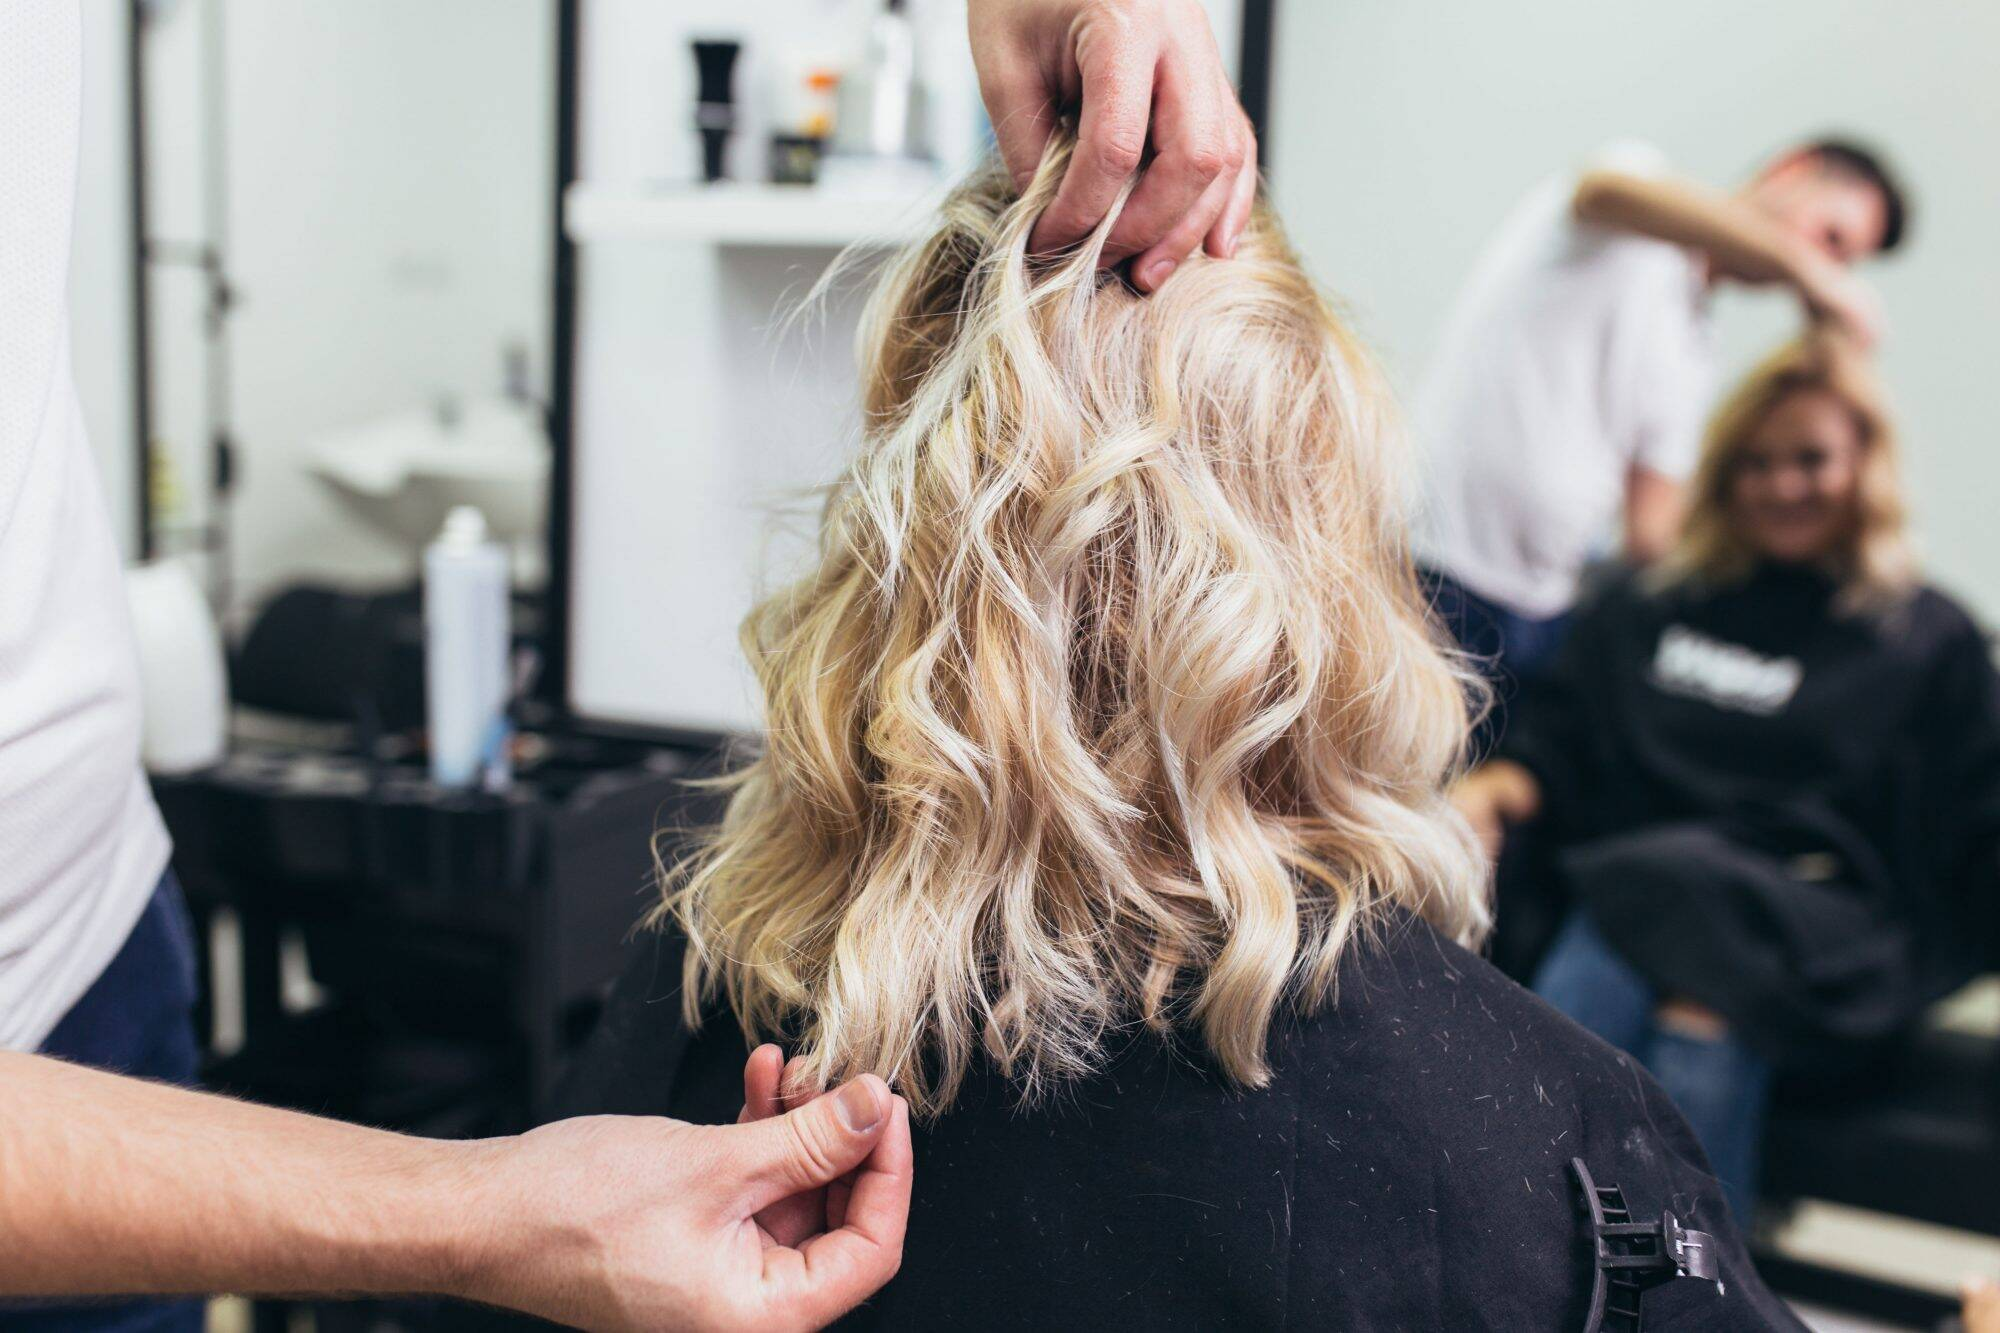 The Easy Secrets to a Perfect Home Blow-Dry - Real Simple